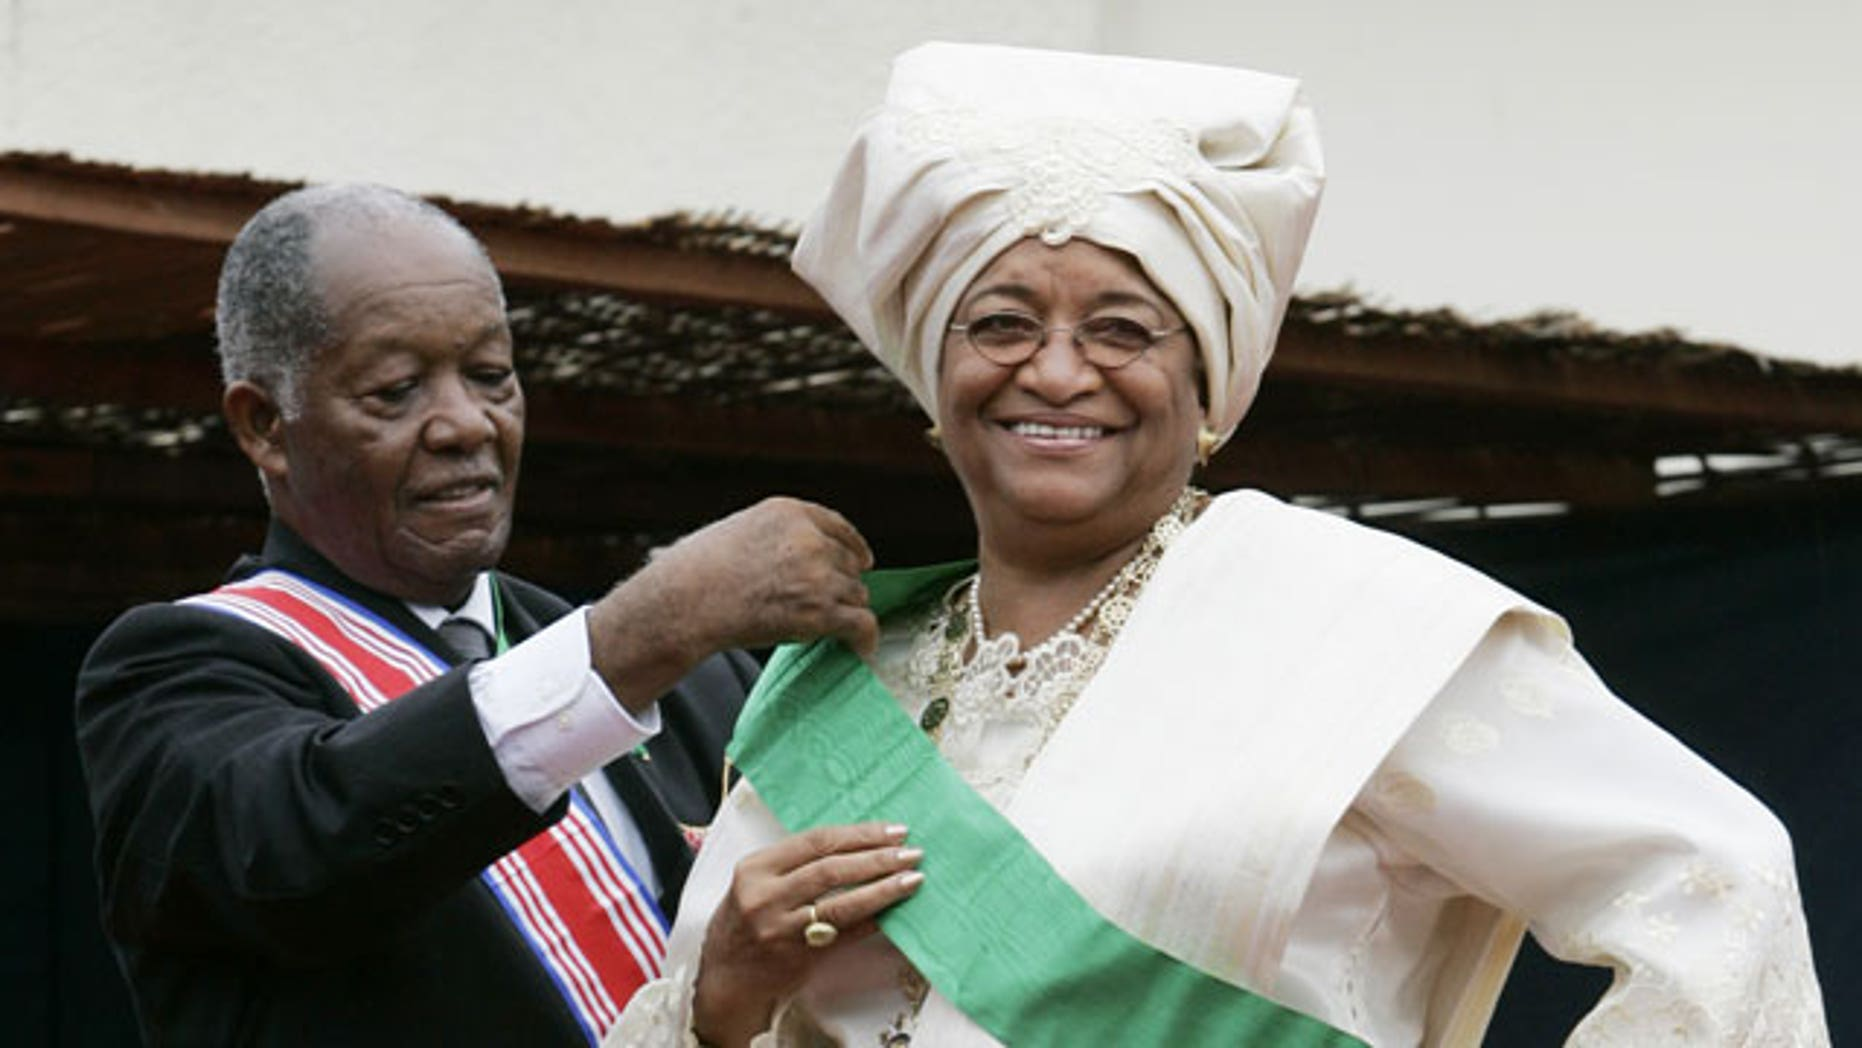 FILE - In this Jan. 16, 2006 file photo, Liberia's new President Ellen Johnson Sirleaf, right, is helped with a sash by Liberian Senior Ambassador-at-large George W. Wallace, Jr., during her inauguration at the Capitol Building in Monrovia, Liberia.